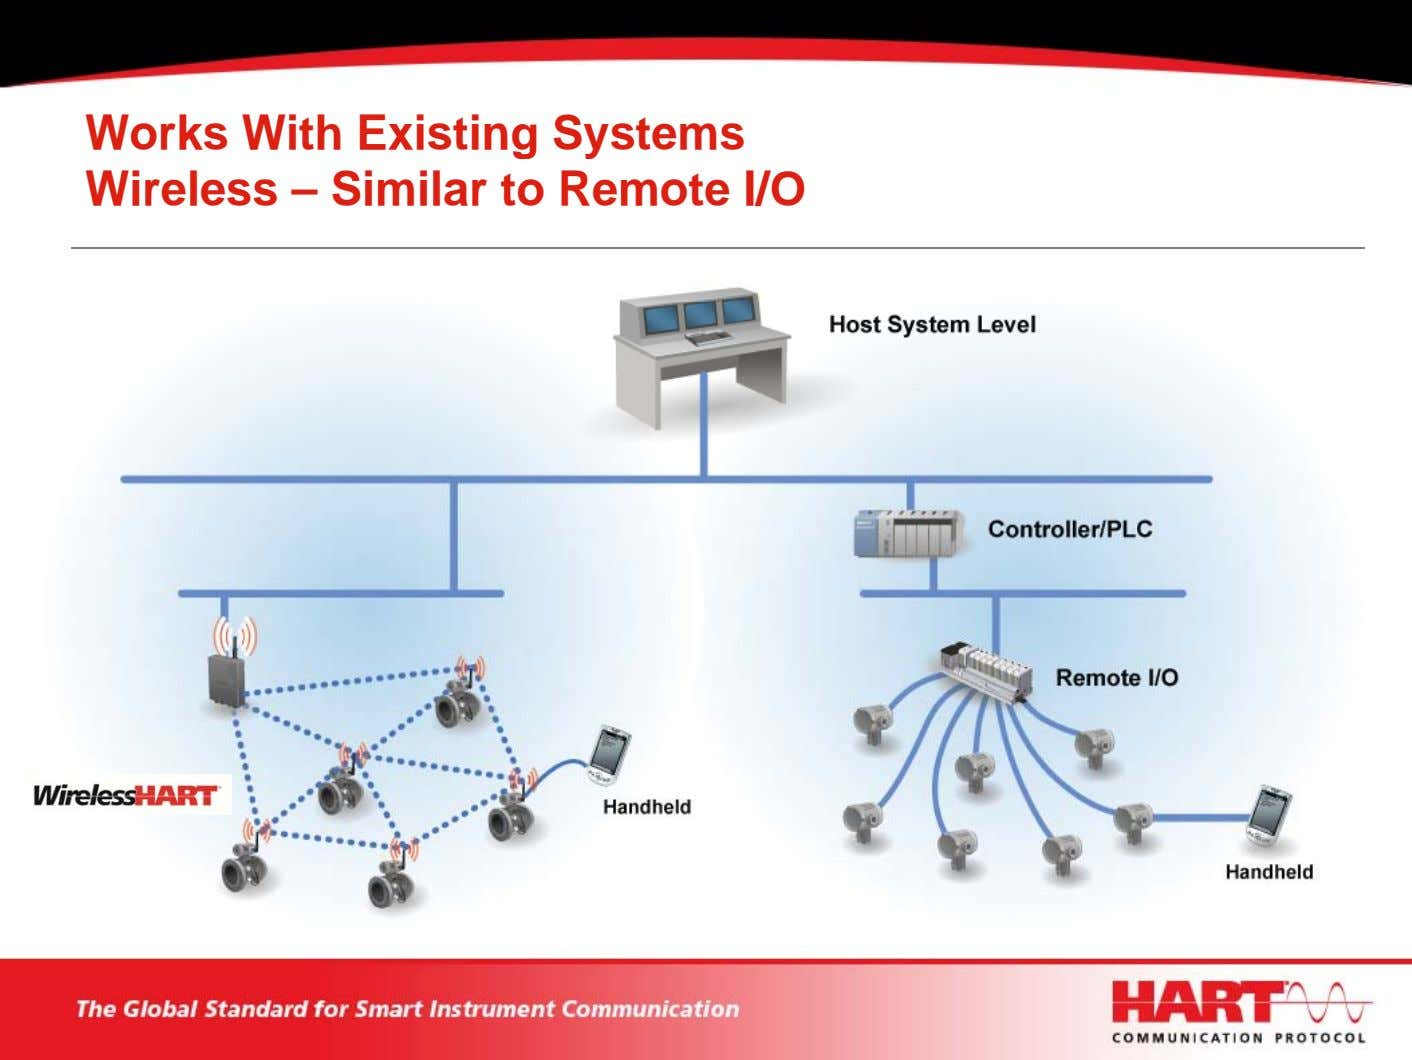 Works With Existing Systems Wireless – Similar to Remote I/O